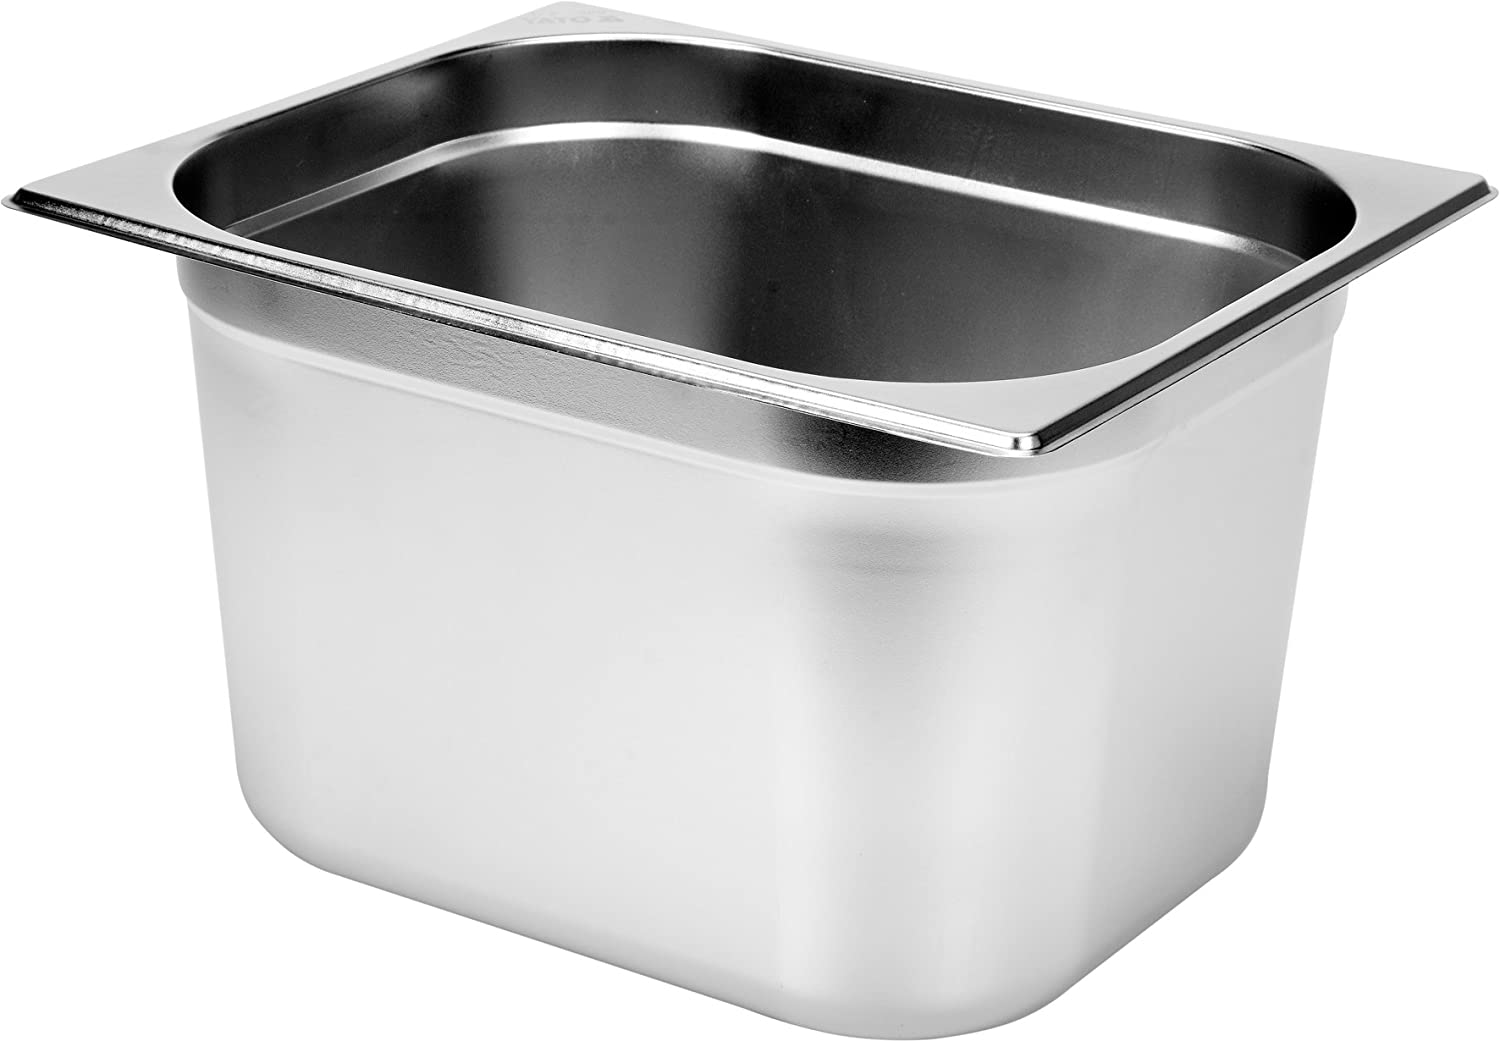 Yato Professional Stainless Steel Gastronorm Omaha Mall 1 GN 2Sizes Select Detroit Mall